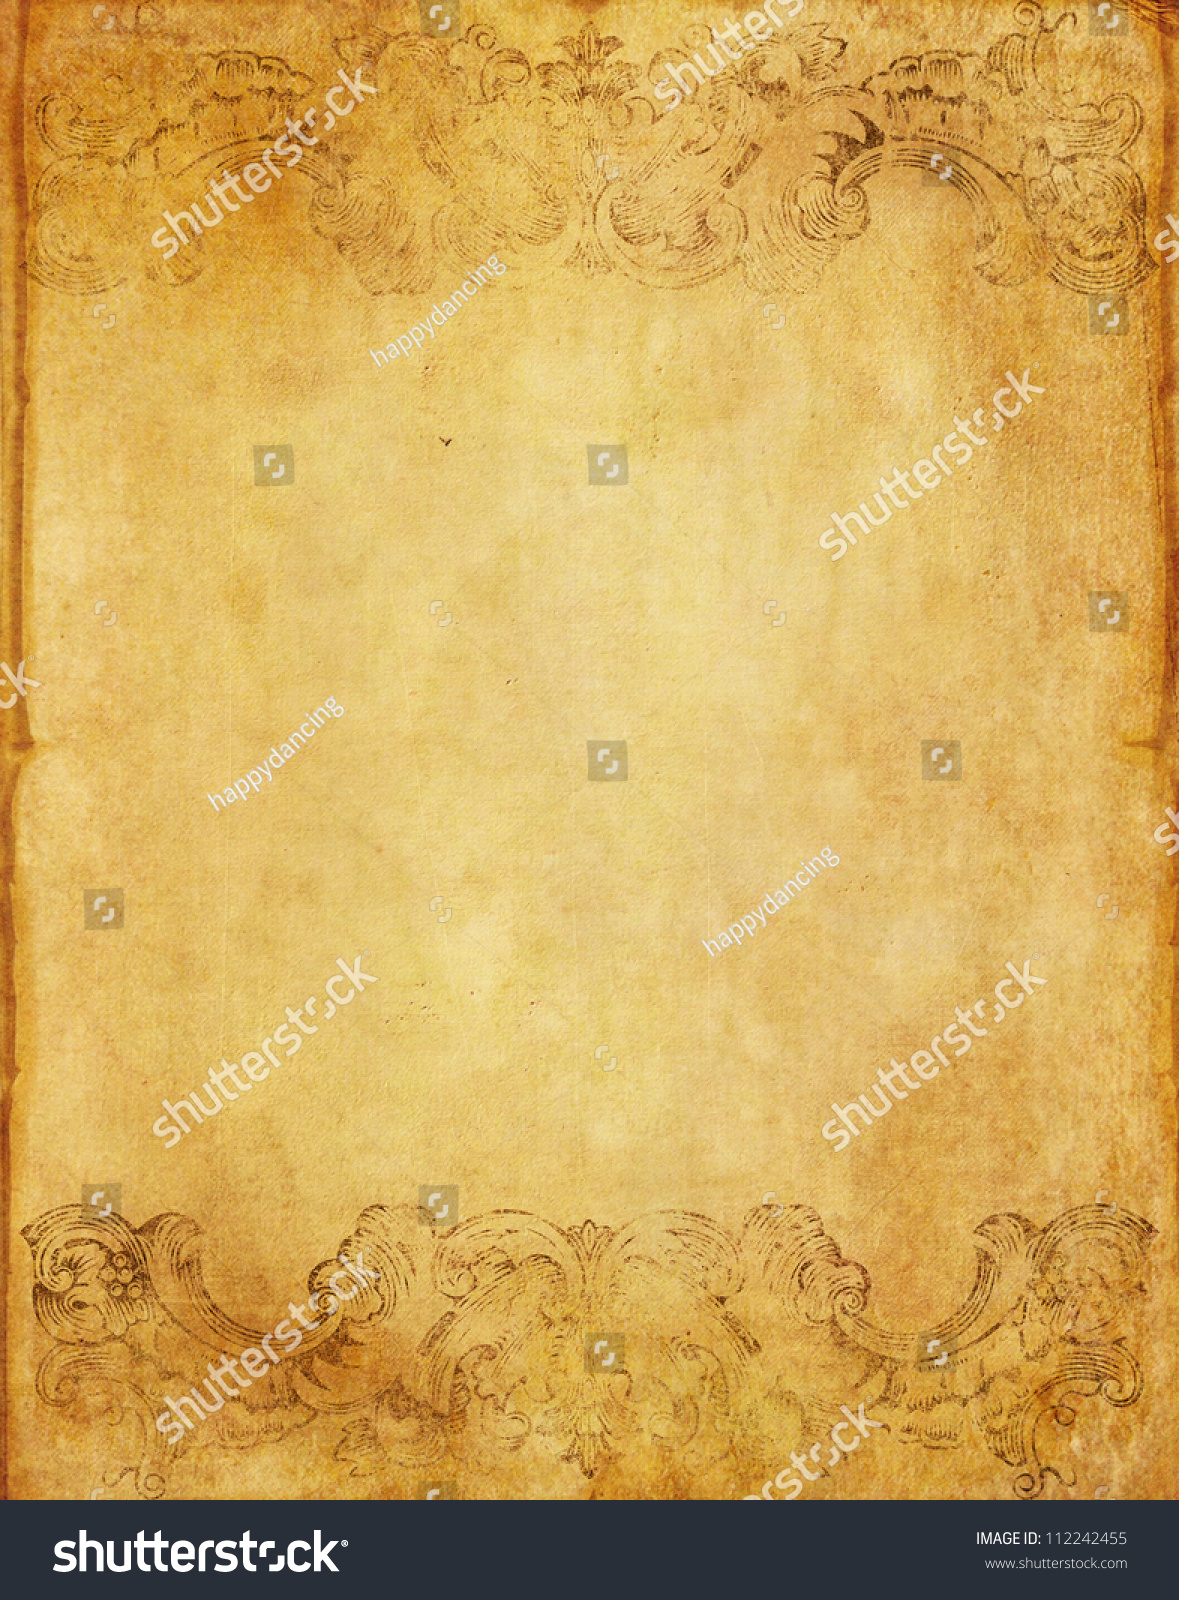 Vintage Book Cover Background : Old grunge paper background book vintage stock photo